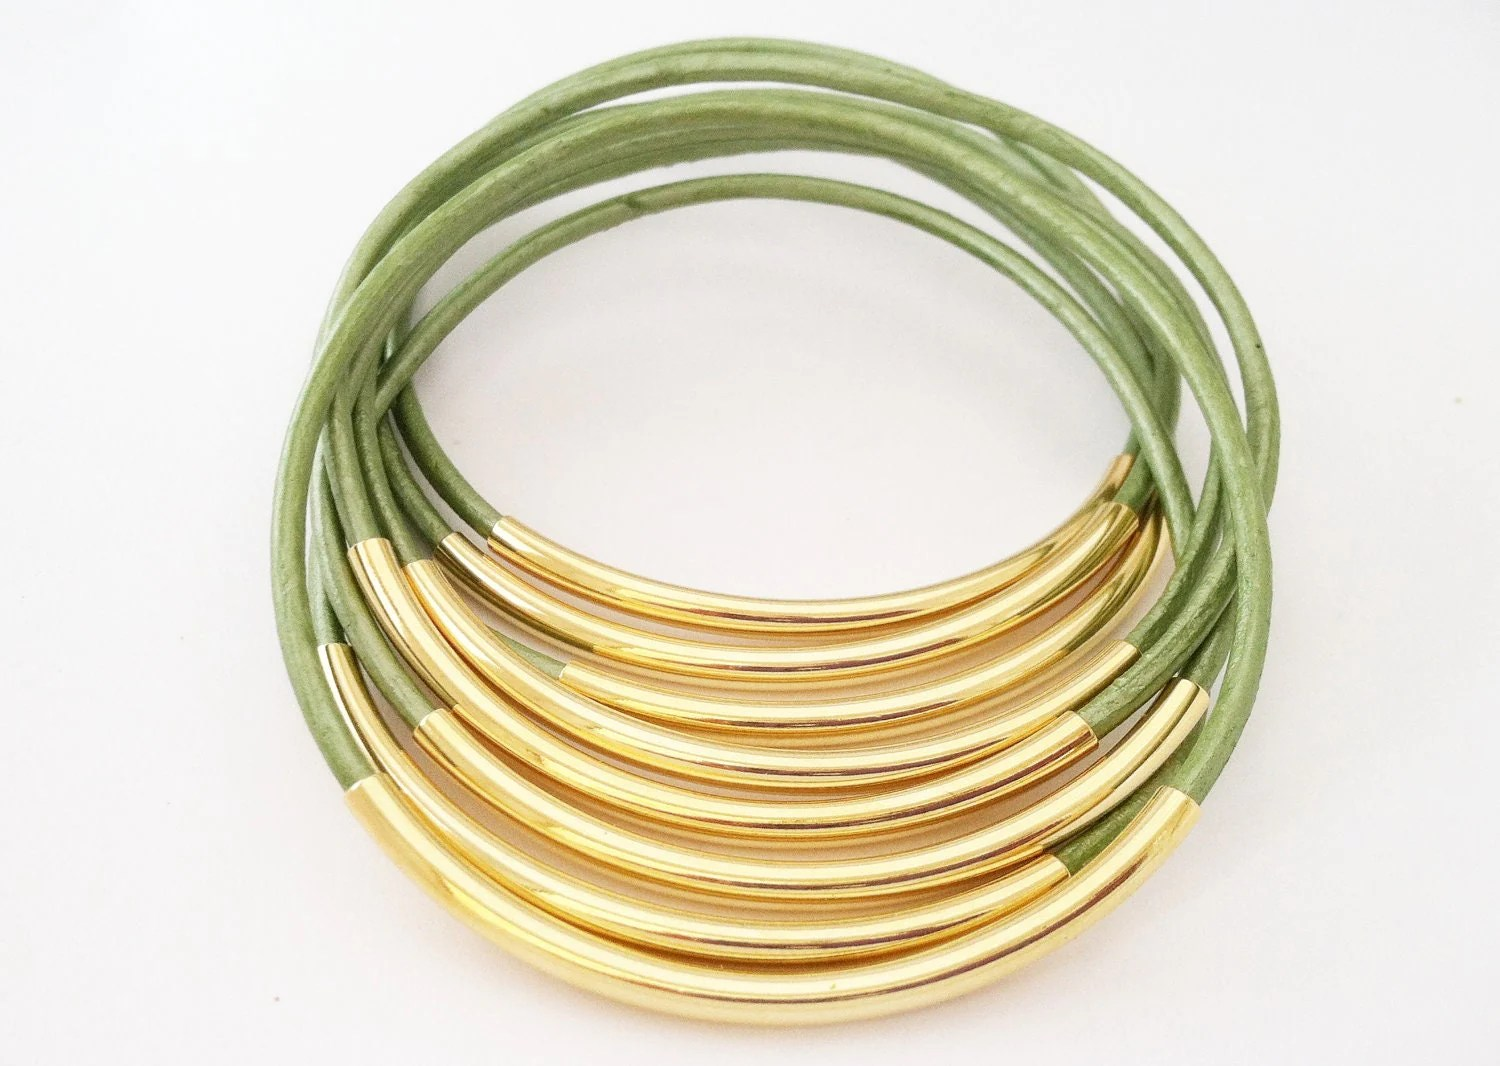 Juniper Green Leather Bangles with Gold or Silver Tubes - Leatherwraps